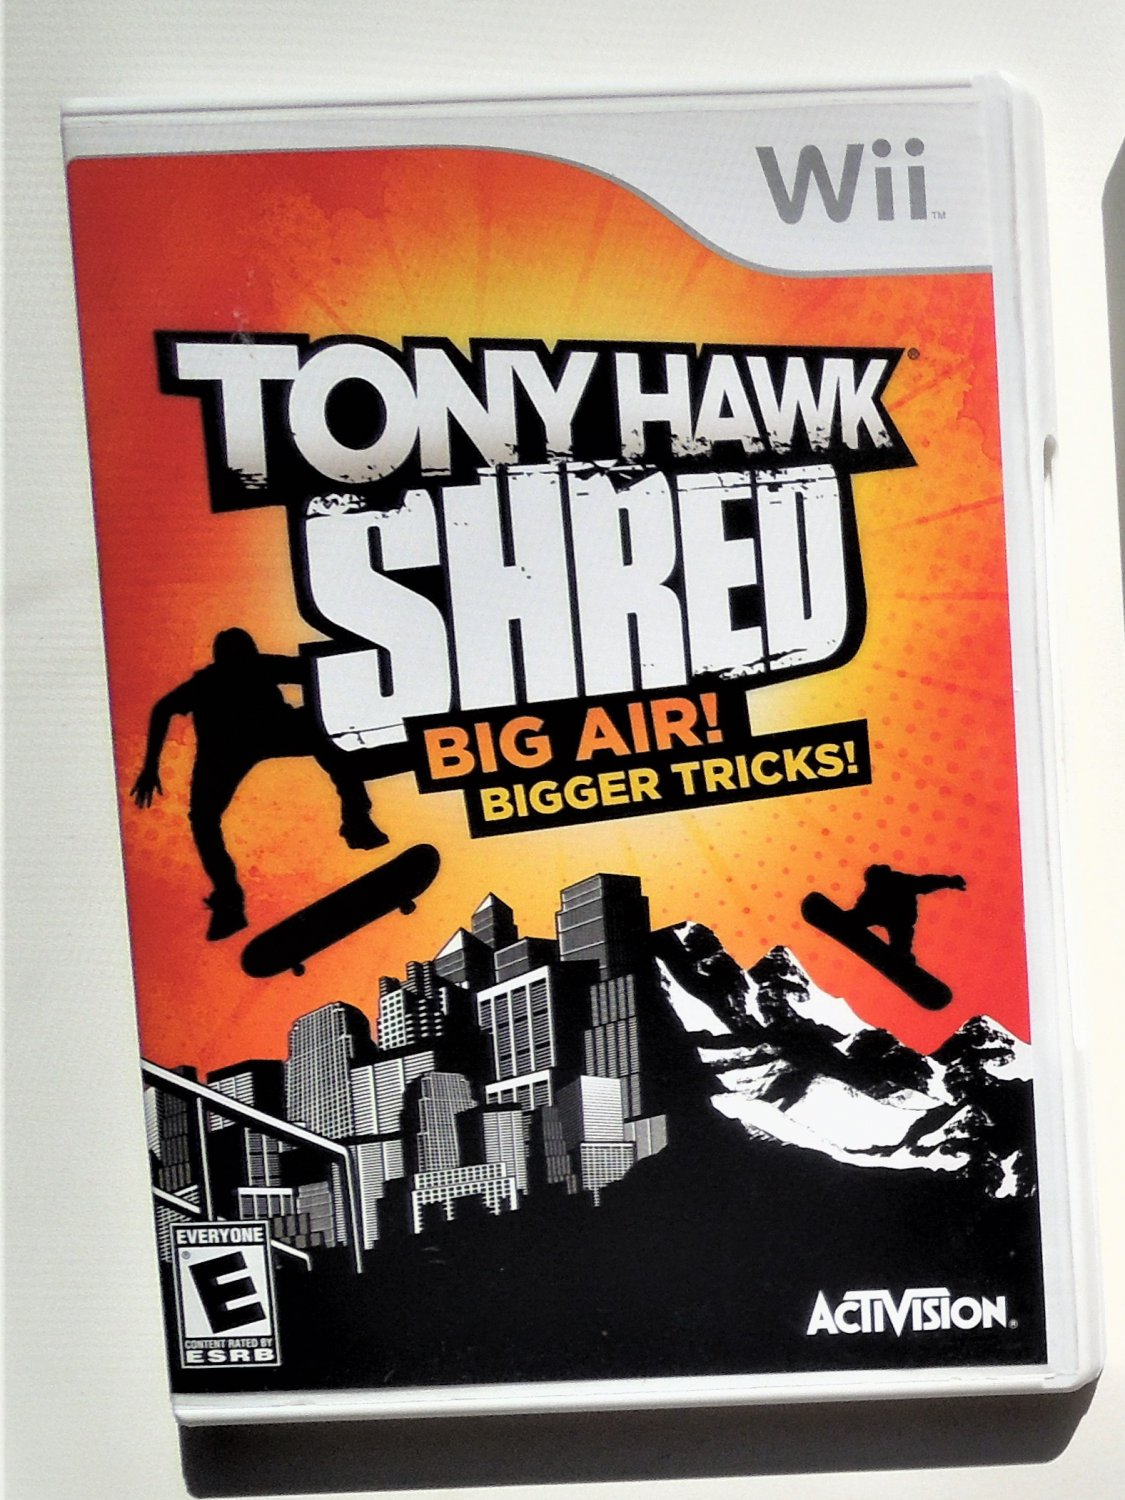 2010 Activision Tony Hawk Shred For Nintendo Wii Game Systems